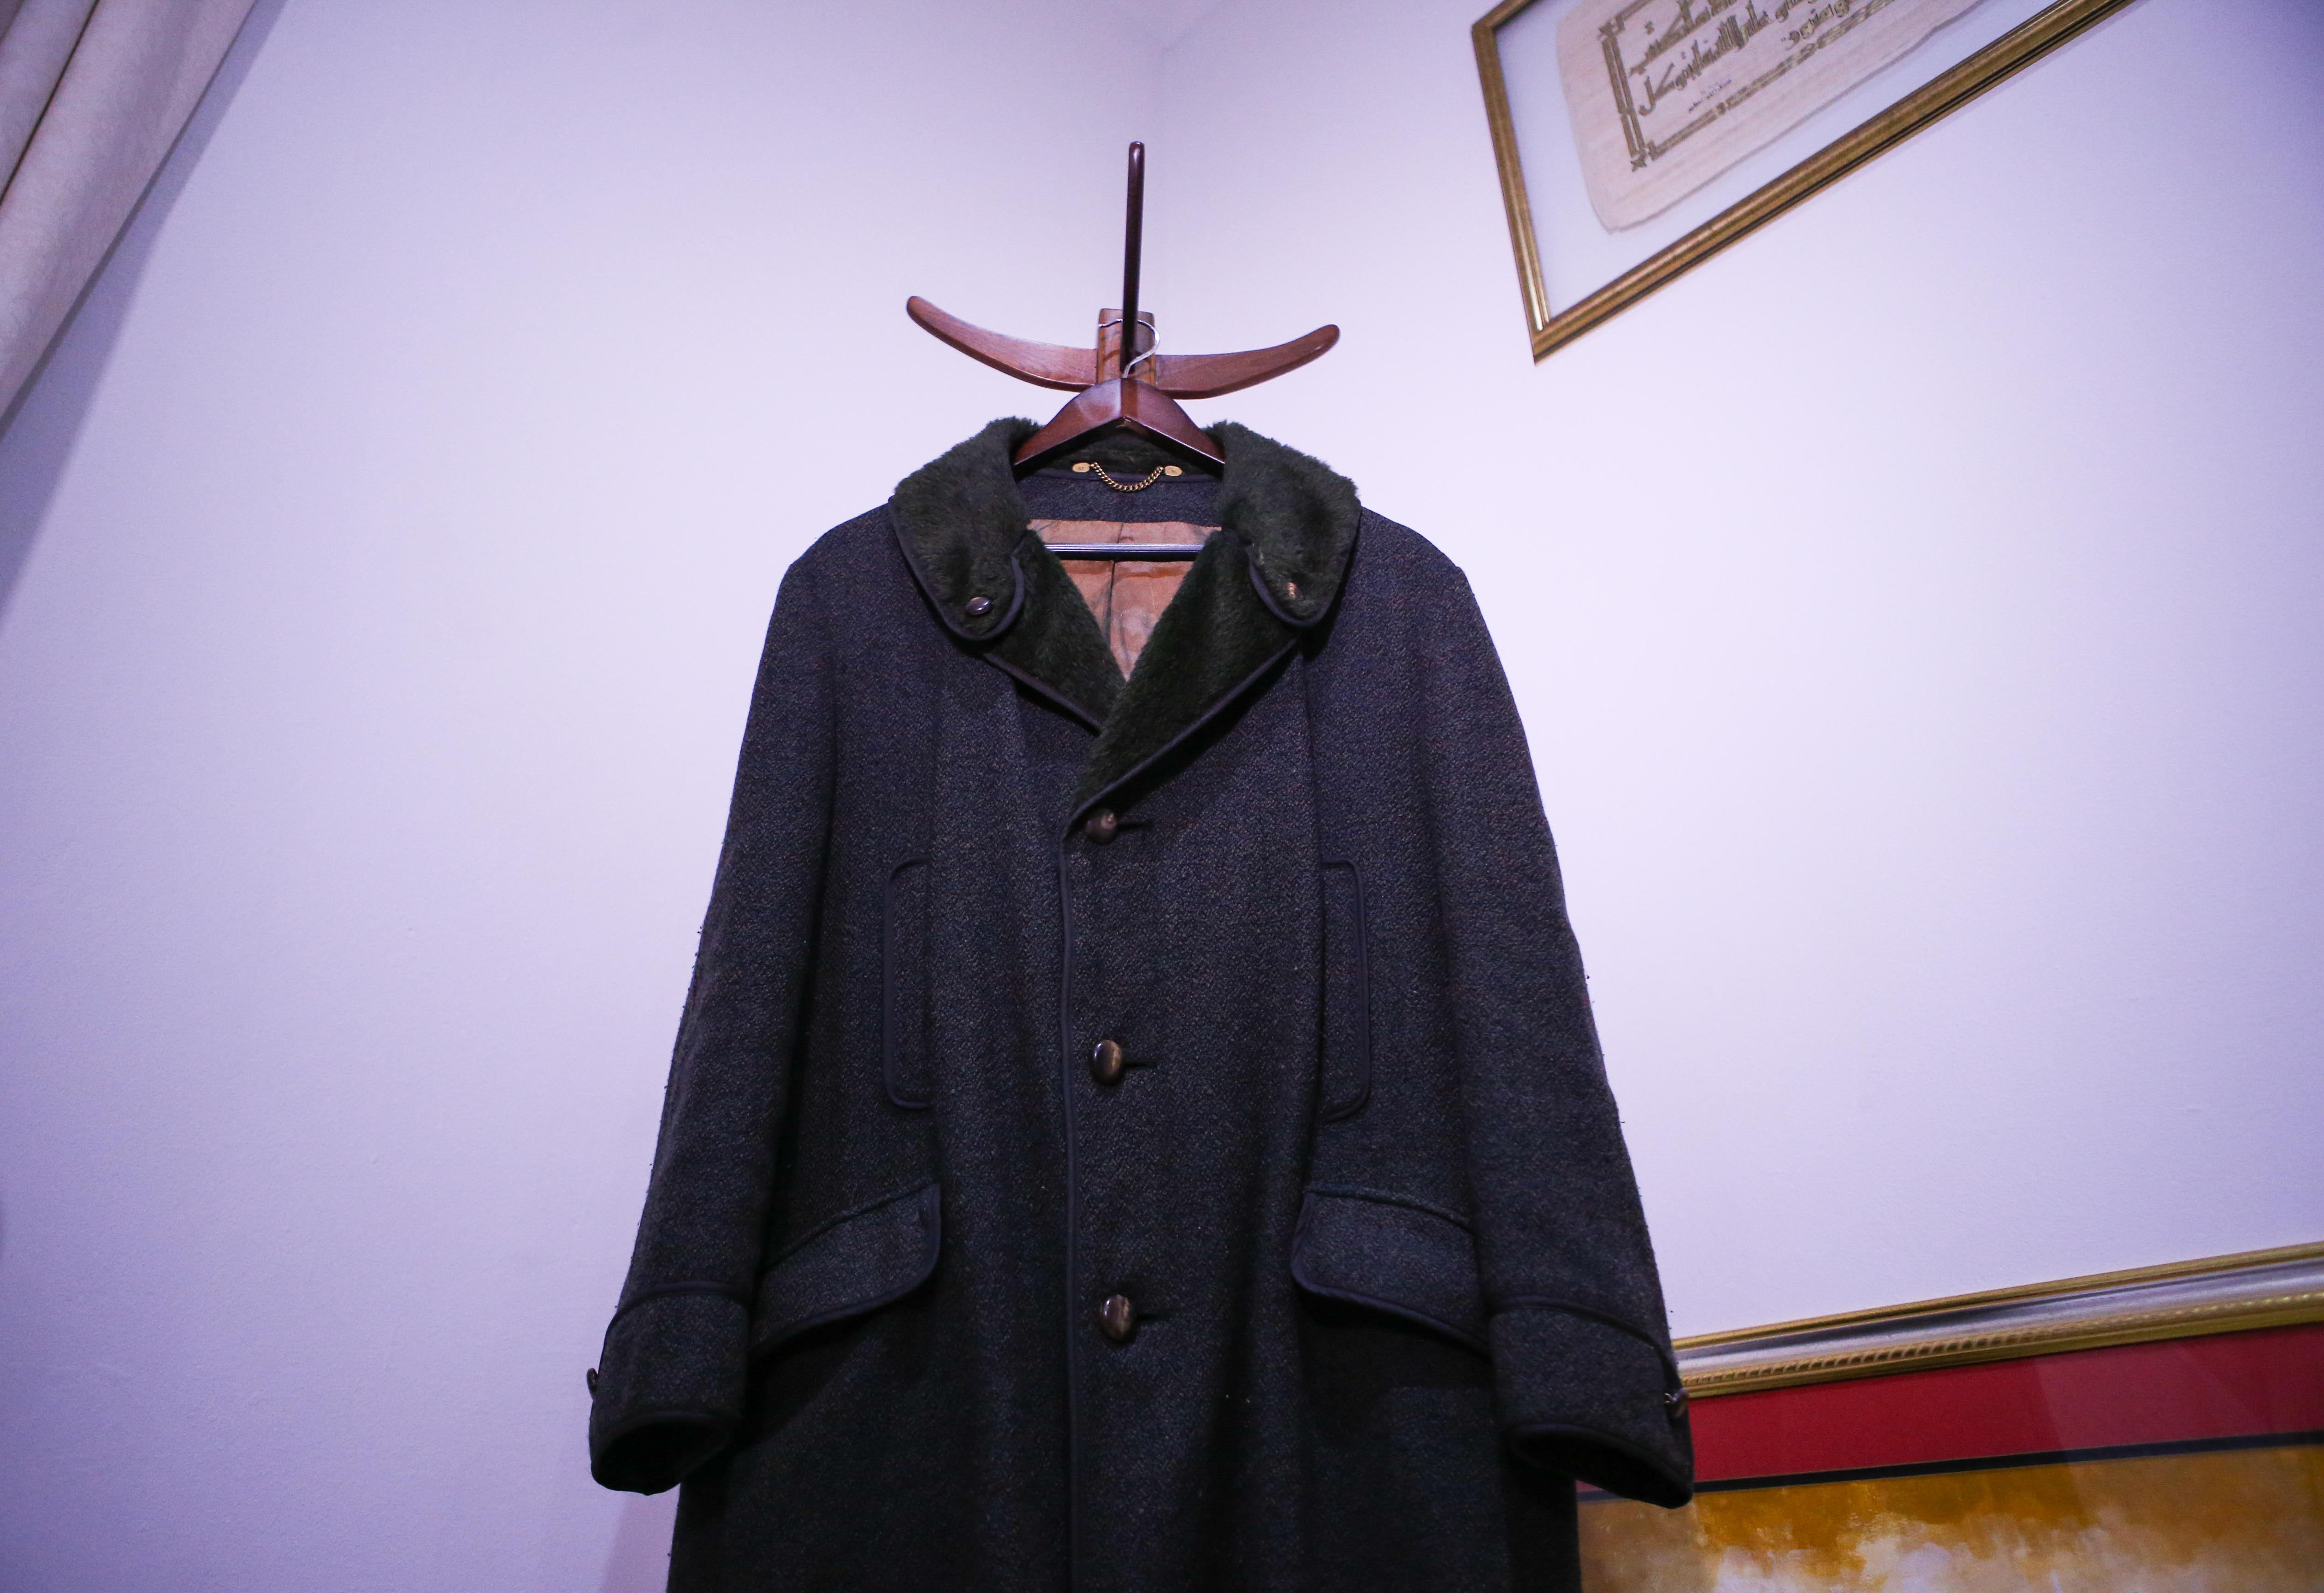 21 September 2019: The coat Imam Haron wore on the morning of 28 May 1969 when he was detained by the Security Branch at Caledon Square Police Station.